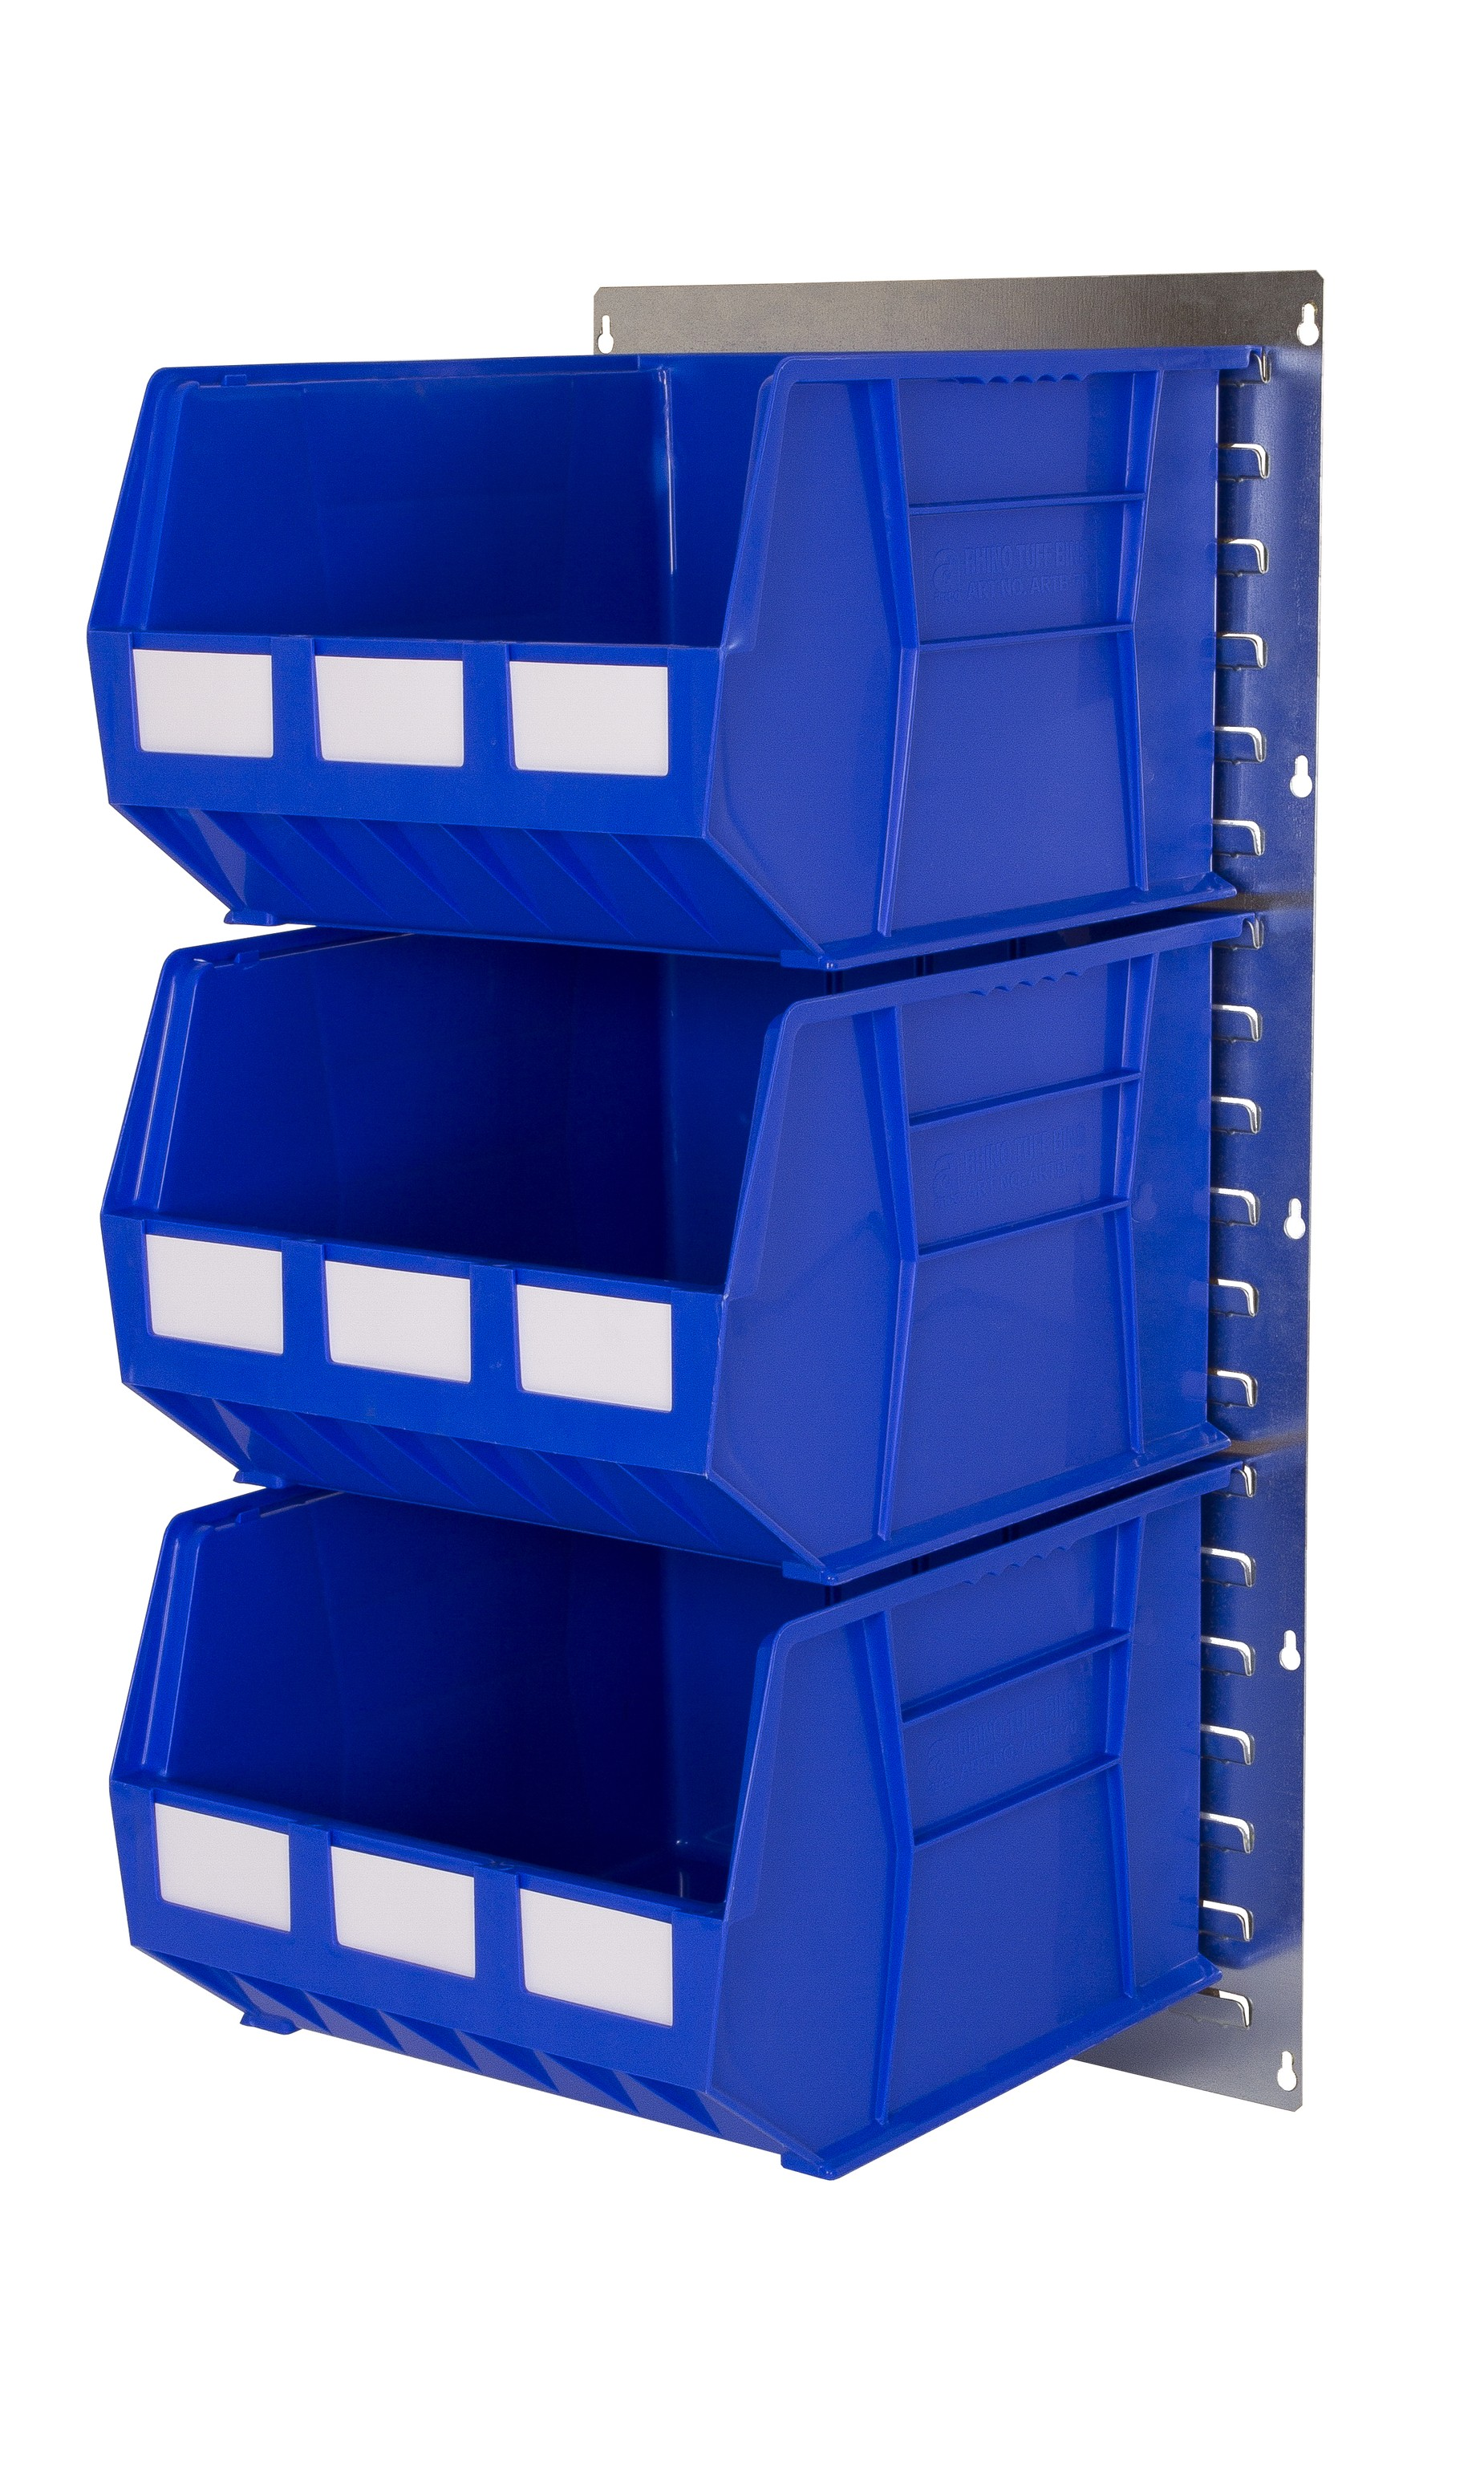 WALL LOUVRE PANELS WITH PLASTIC BINS (RP)